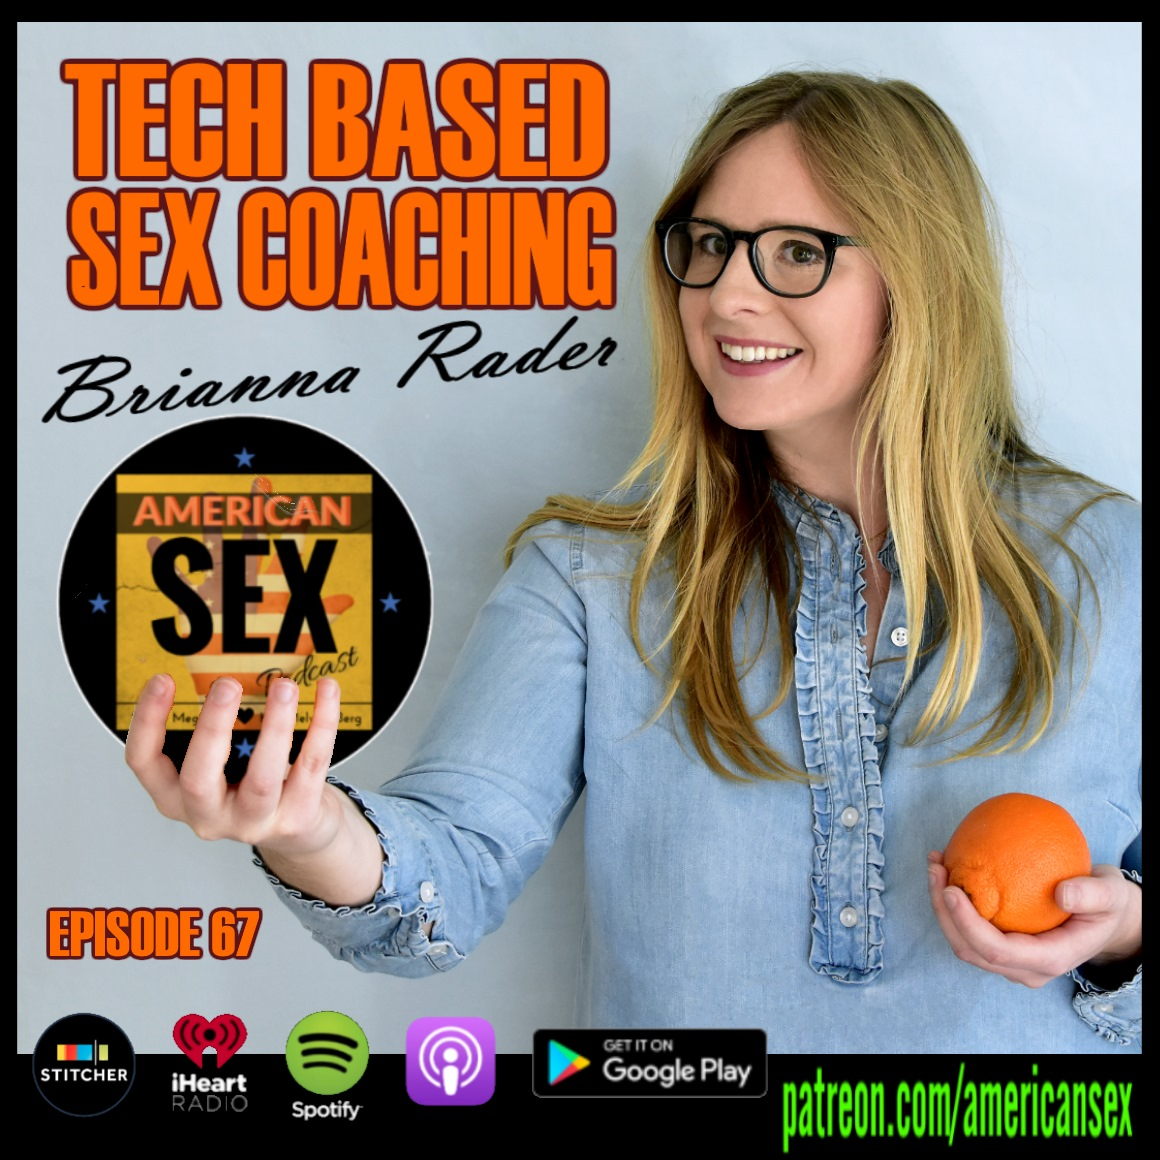 Brianna Rader Juicebox Sex Coaching